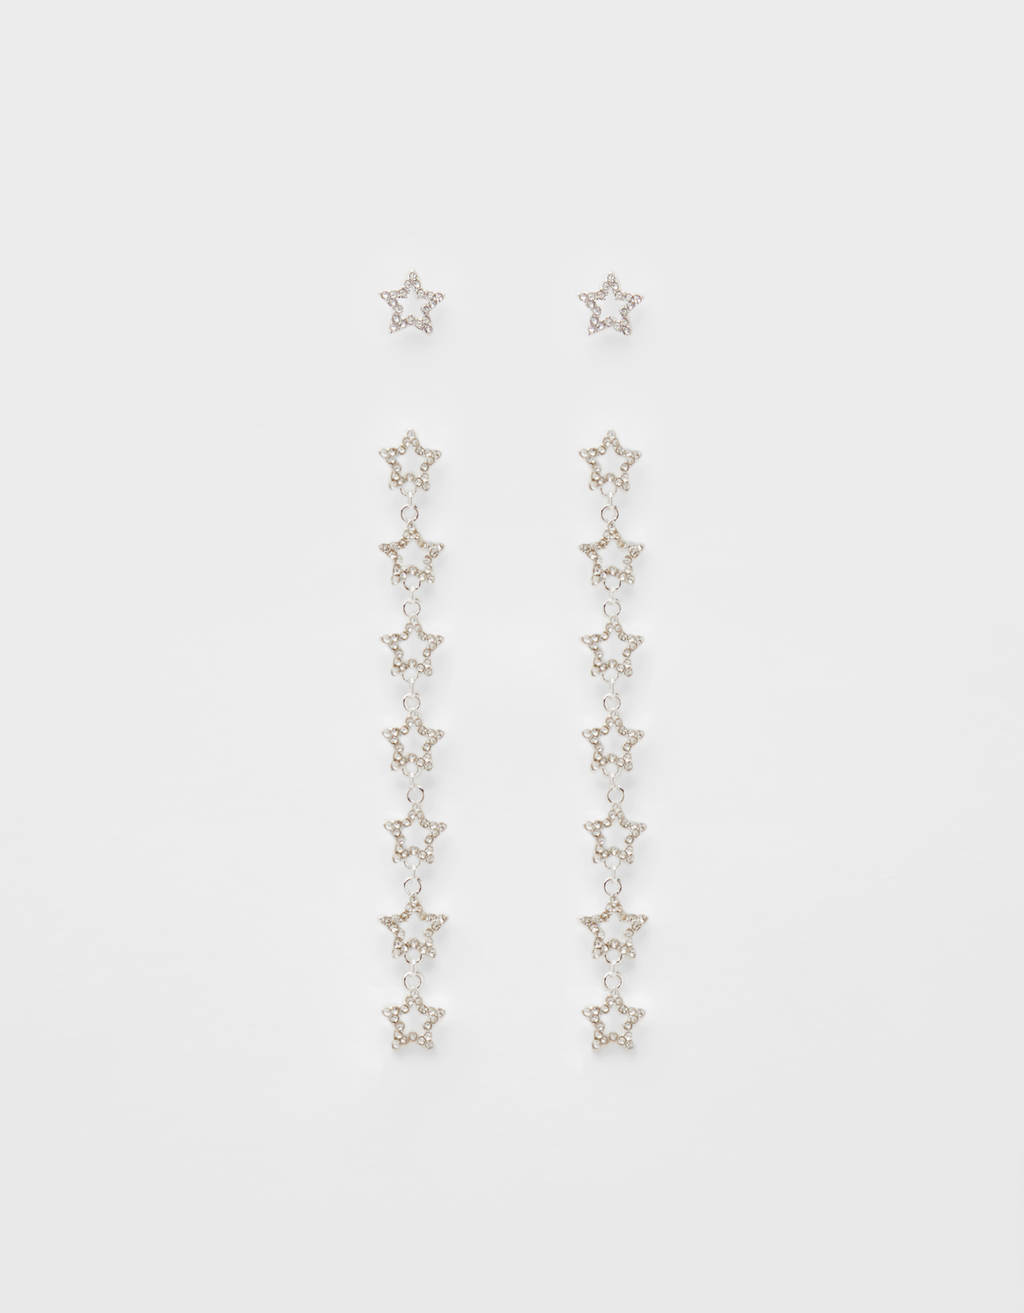 Dangle earrings with stars